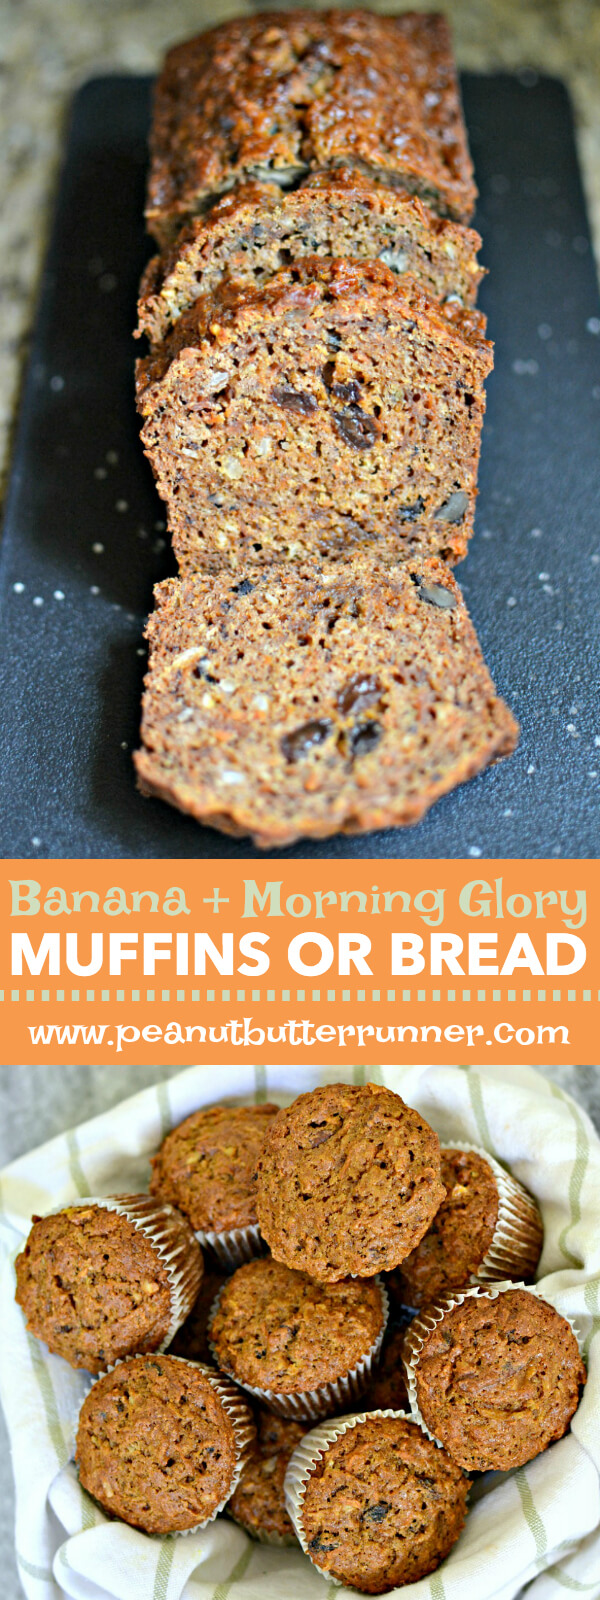 Banana morning glory muffins or quick bread banana morning glory muffins or quick bread recipe forumfinder Gallery